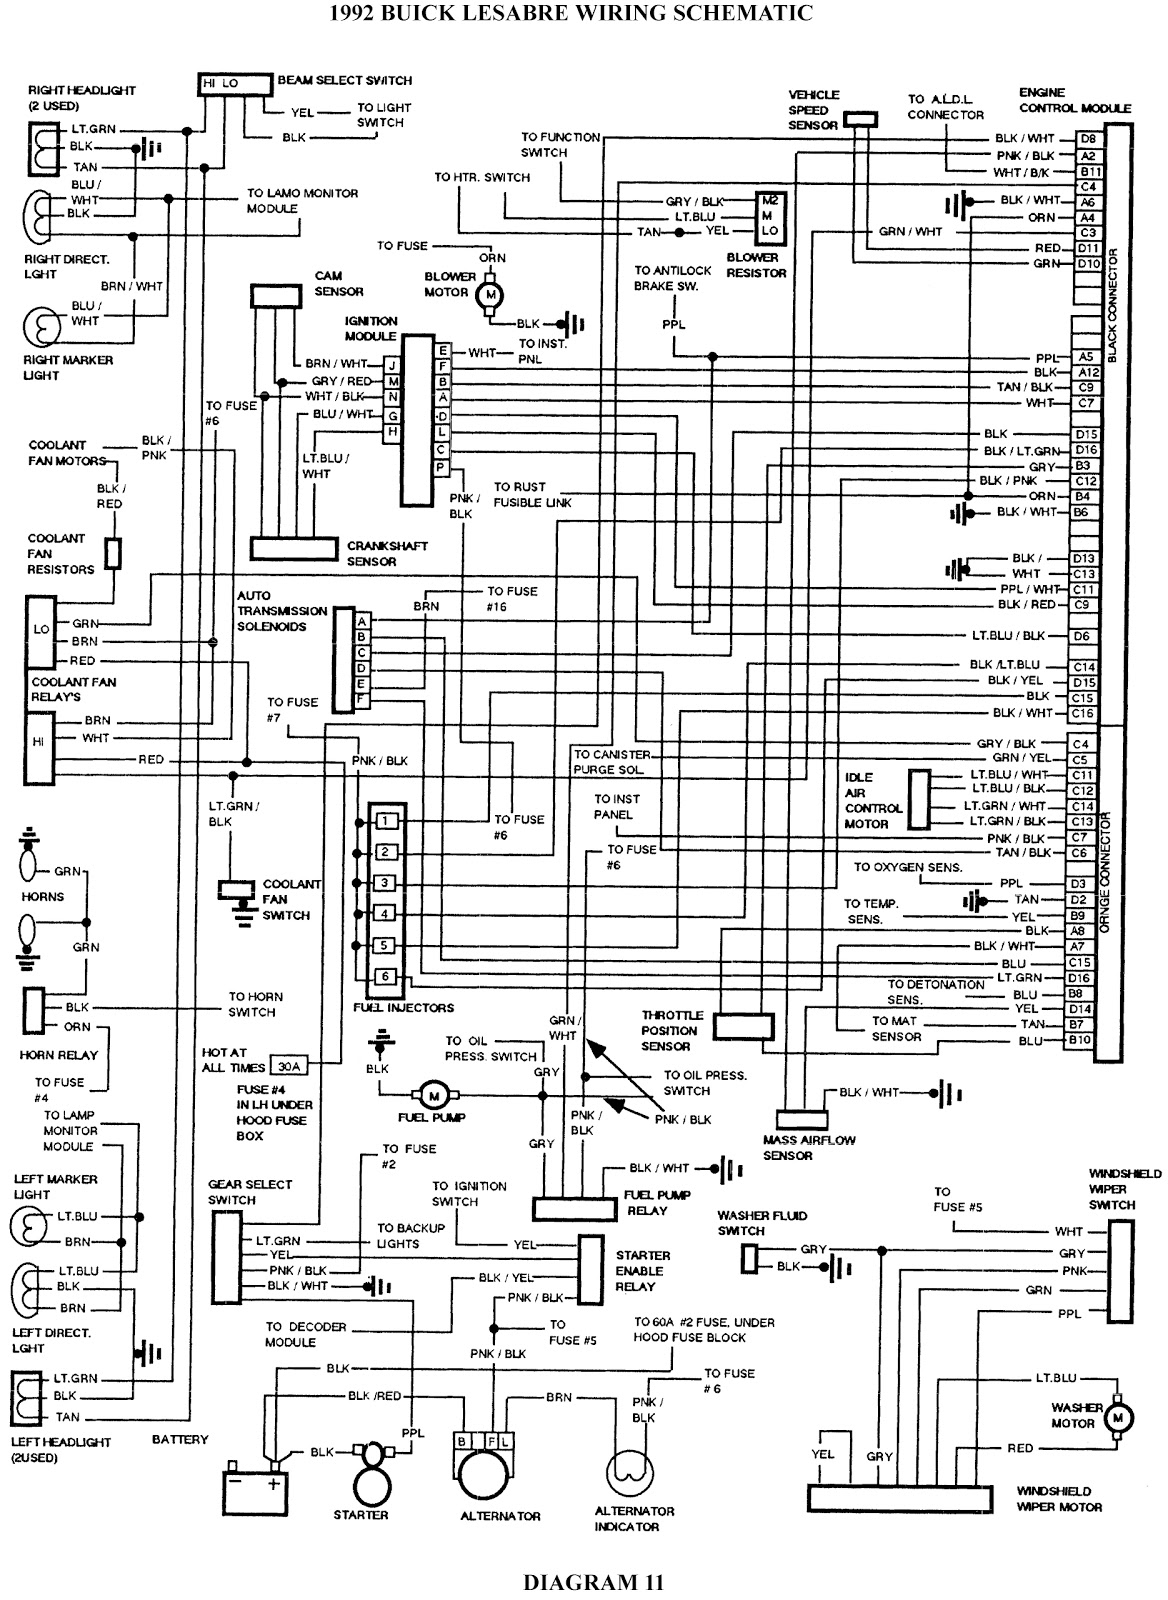 1997 Buick Lesabre Radio Wiring Diagram 2002 Ford Escape Exhaust 1992 Schematic